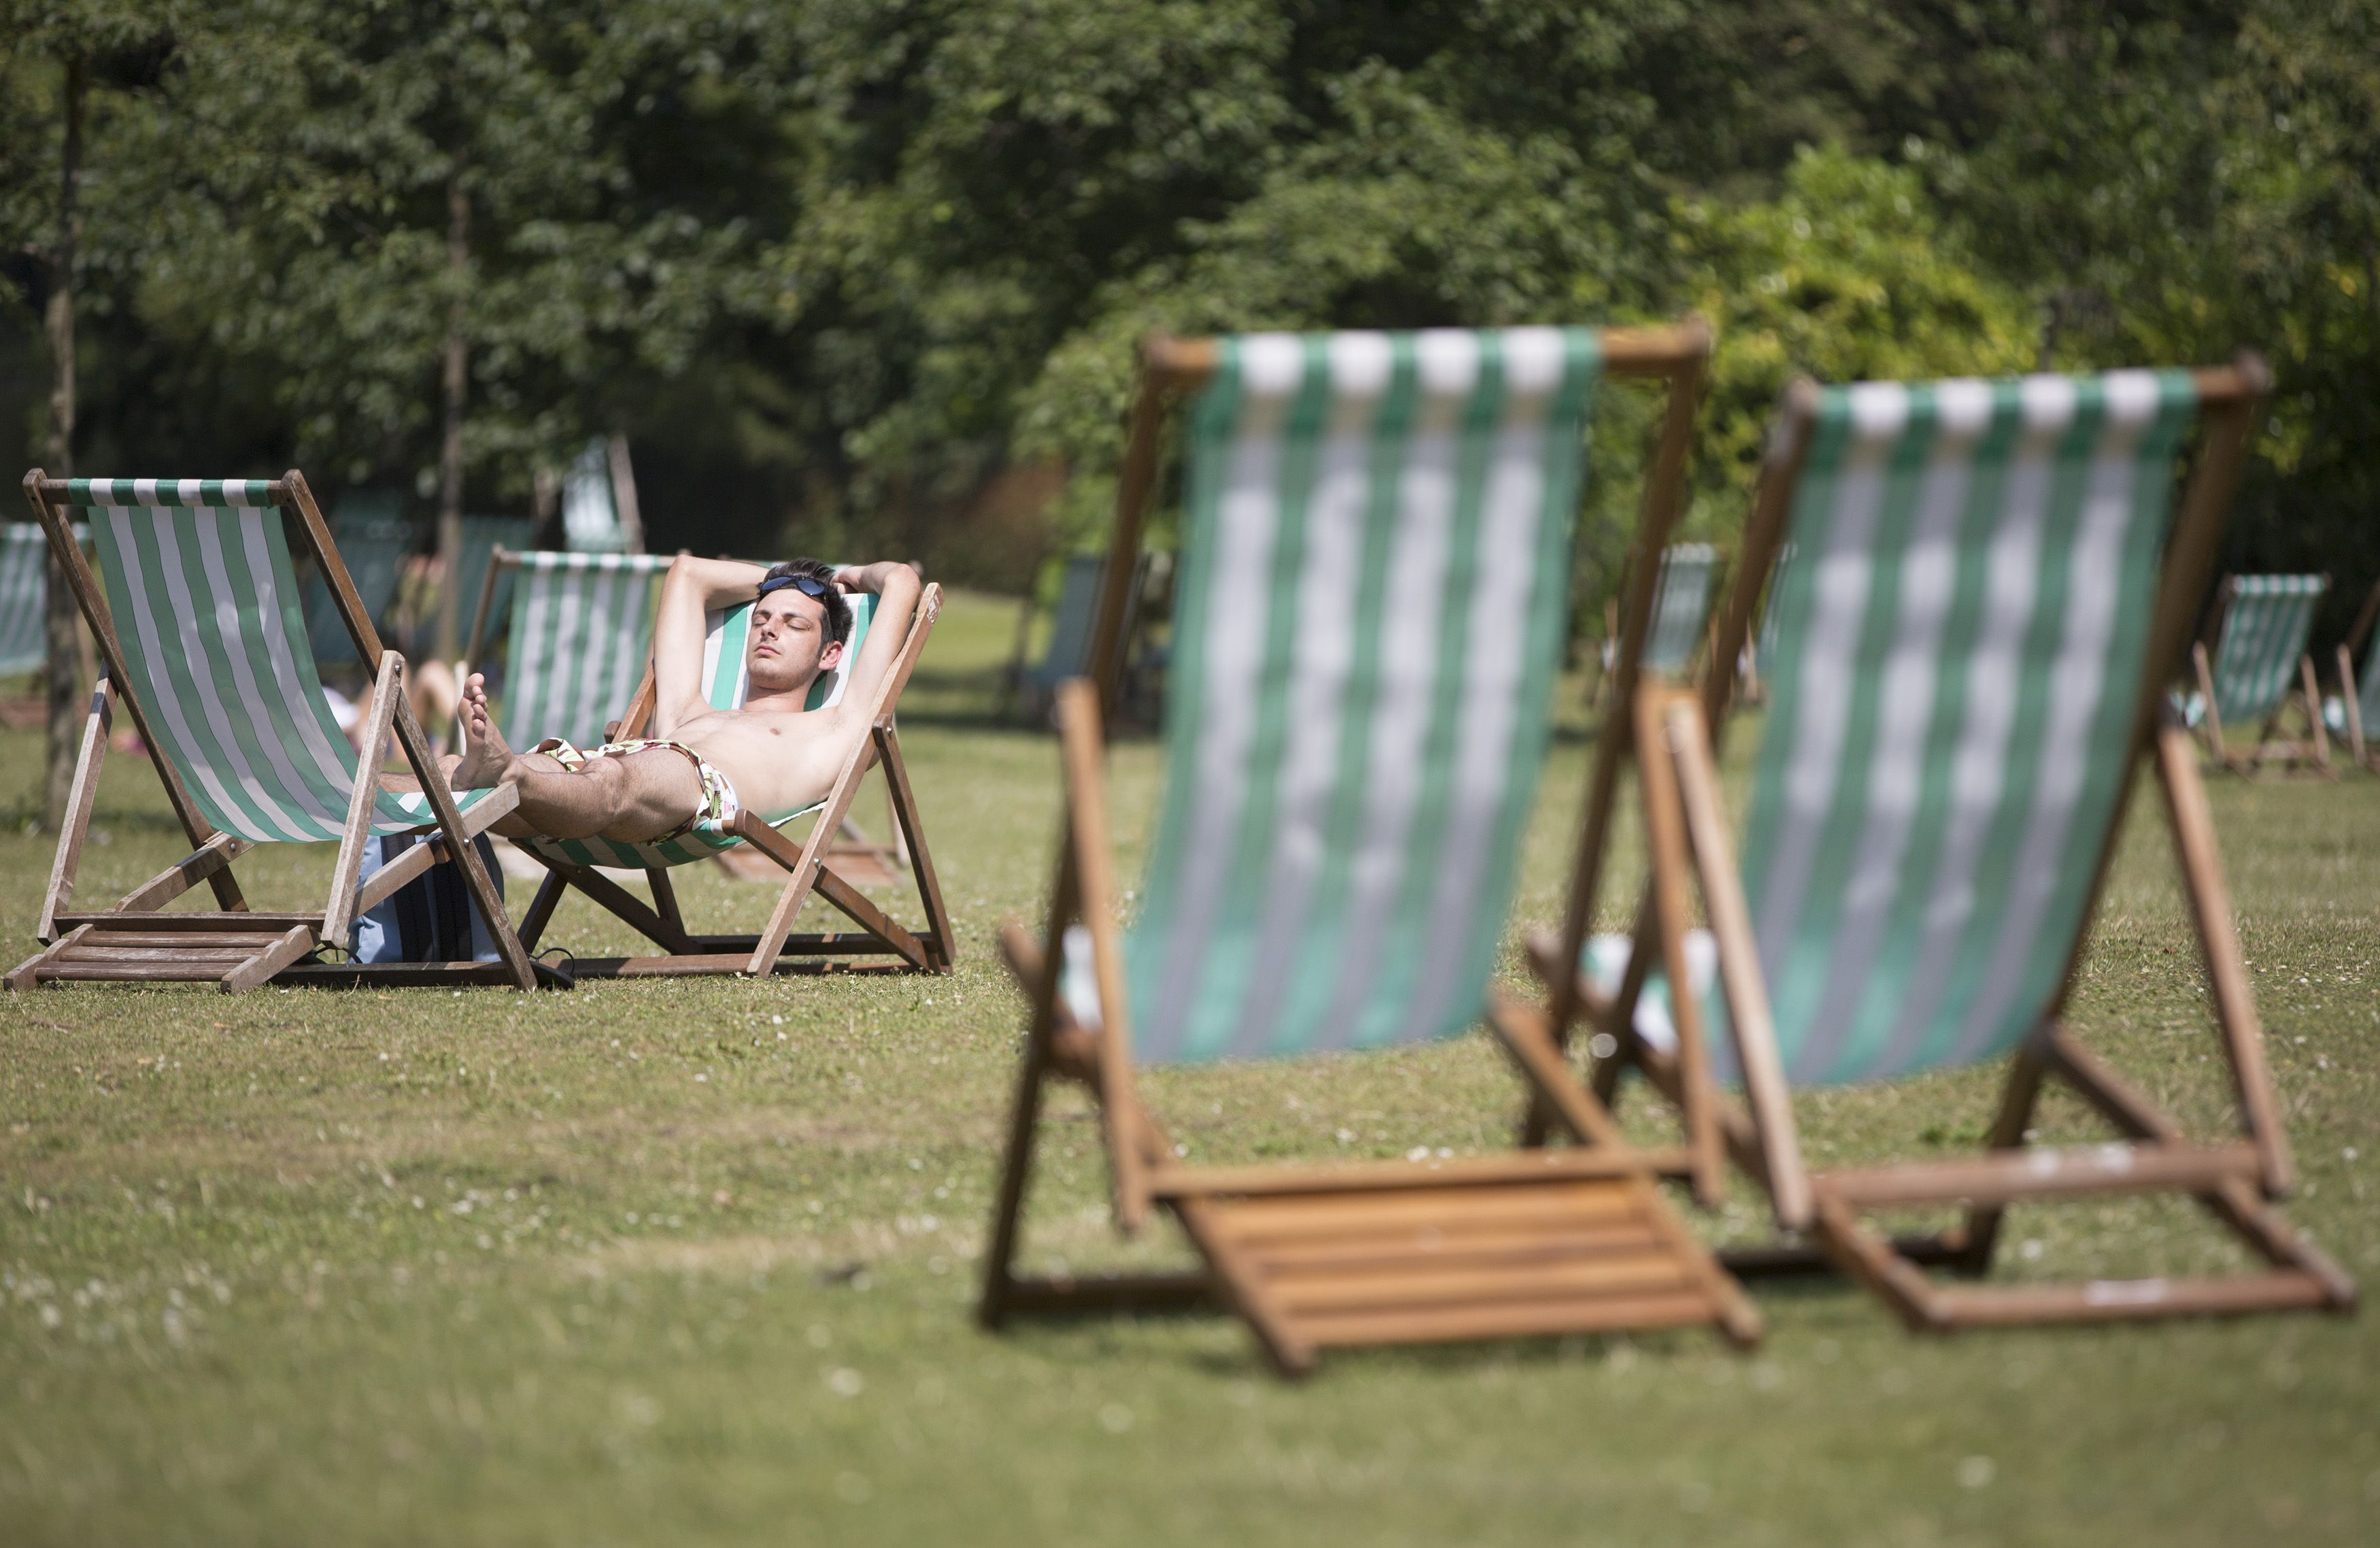 A man relaxes on a deckchair in Regents Park during a hot day in London July 18, 2014. REUTERS/Neil Hall